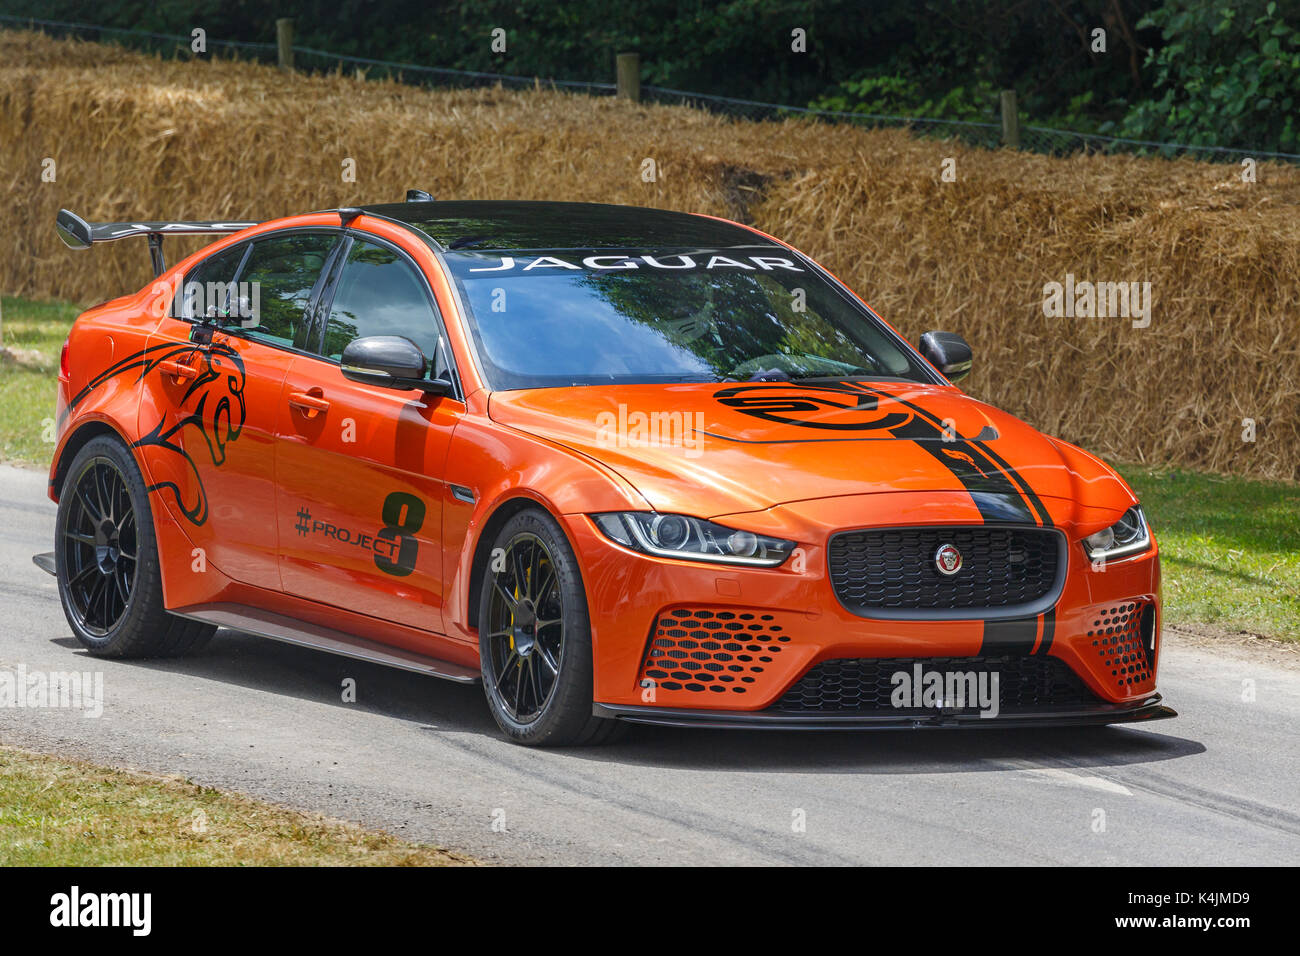 2017 jaguar xe svr project 8 at the 2017 goodwood festival of speed stock photo  royalty free